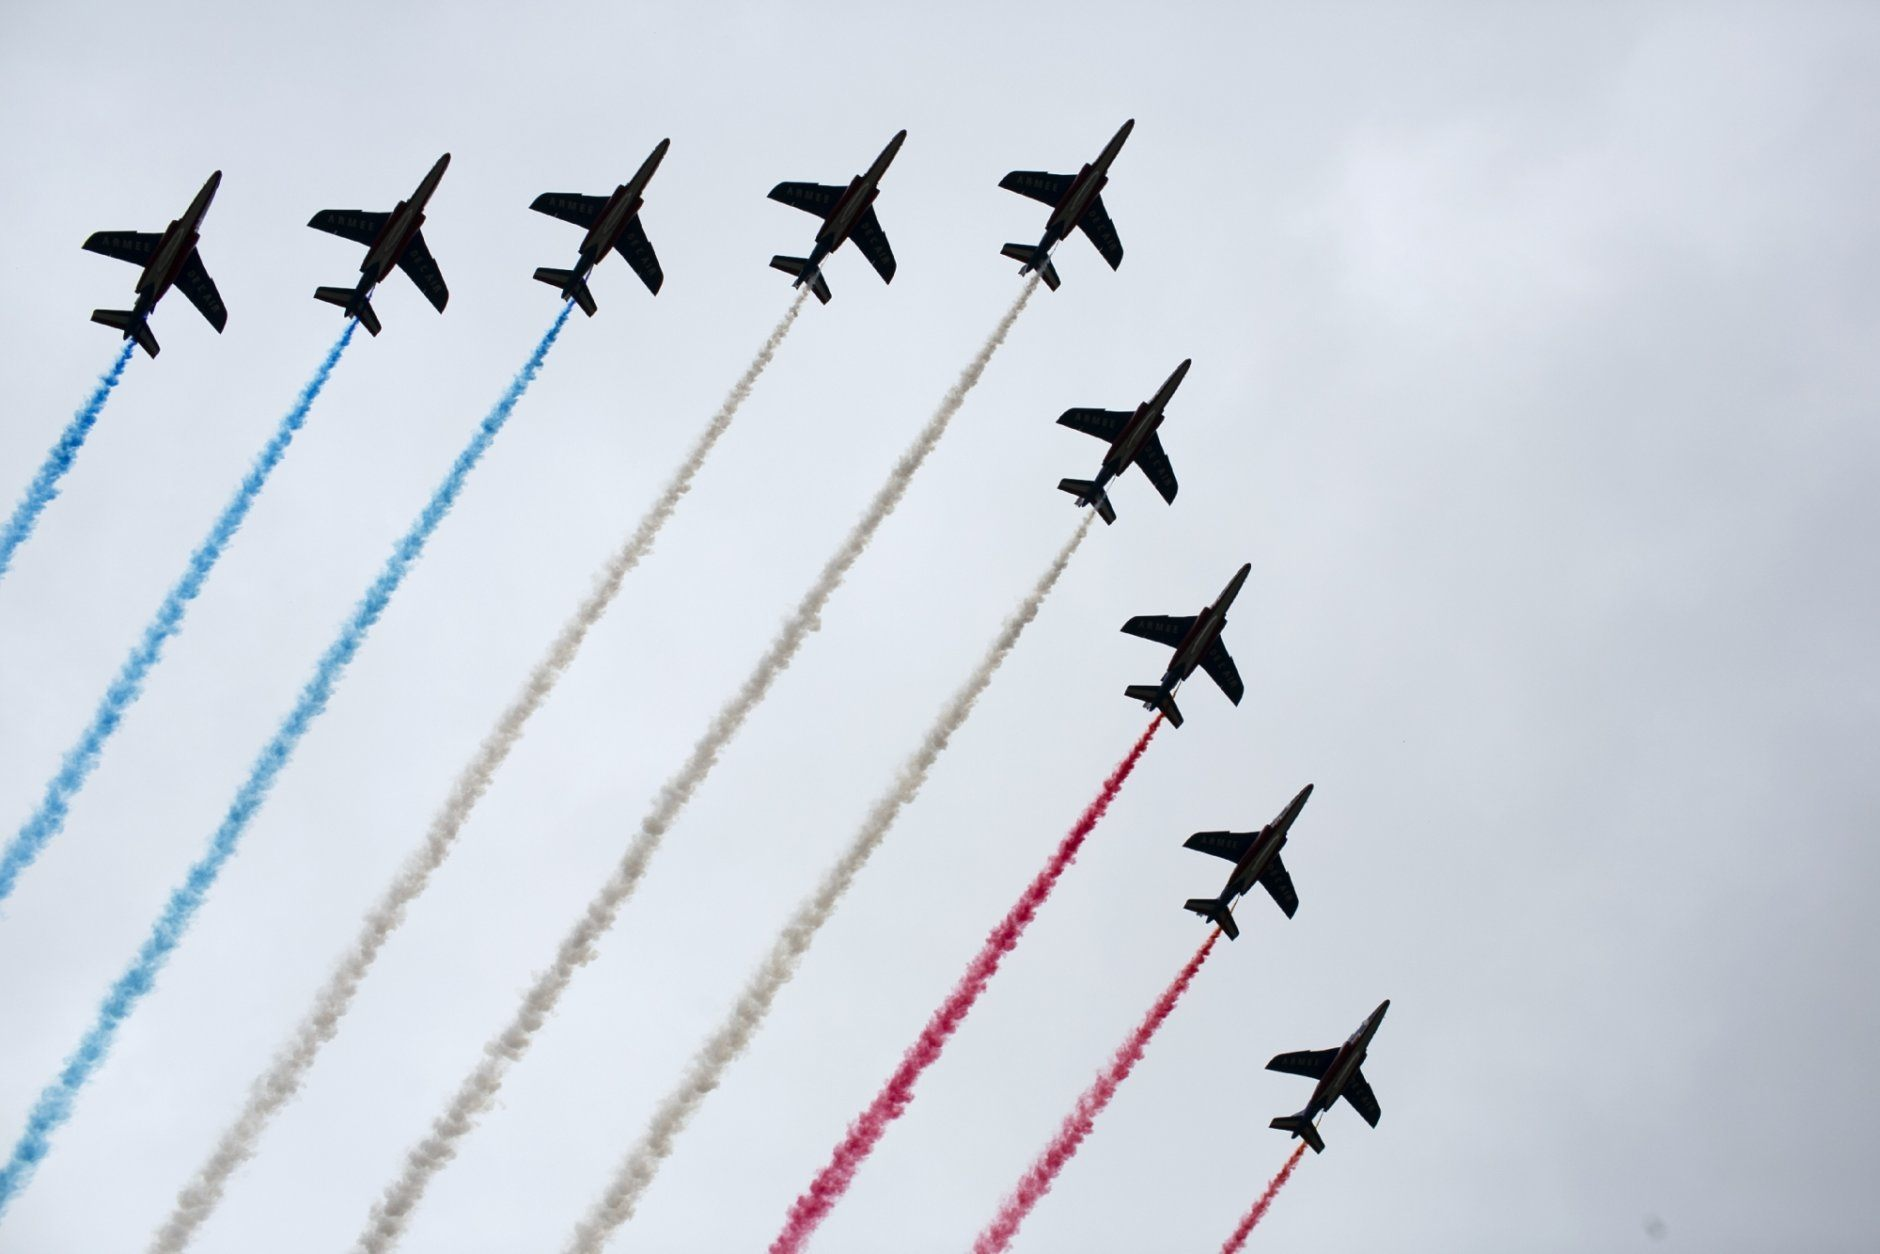 French Alpha jets of the Patrouille de France spray lines of smoke in the colors of the French flag over the Champs-Elysees during Bastille Day parade Sunday, July 14, 2019 near the Champs Elysees avenue in Paris. (AP Photo/Rafael Yaghobzadeh)